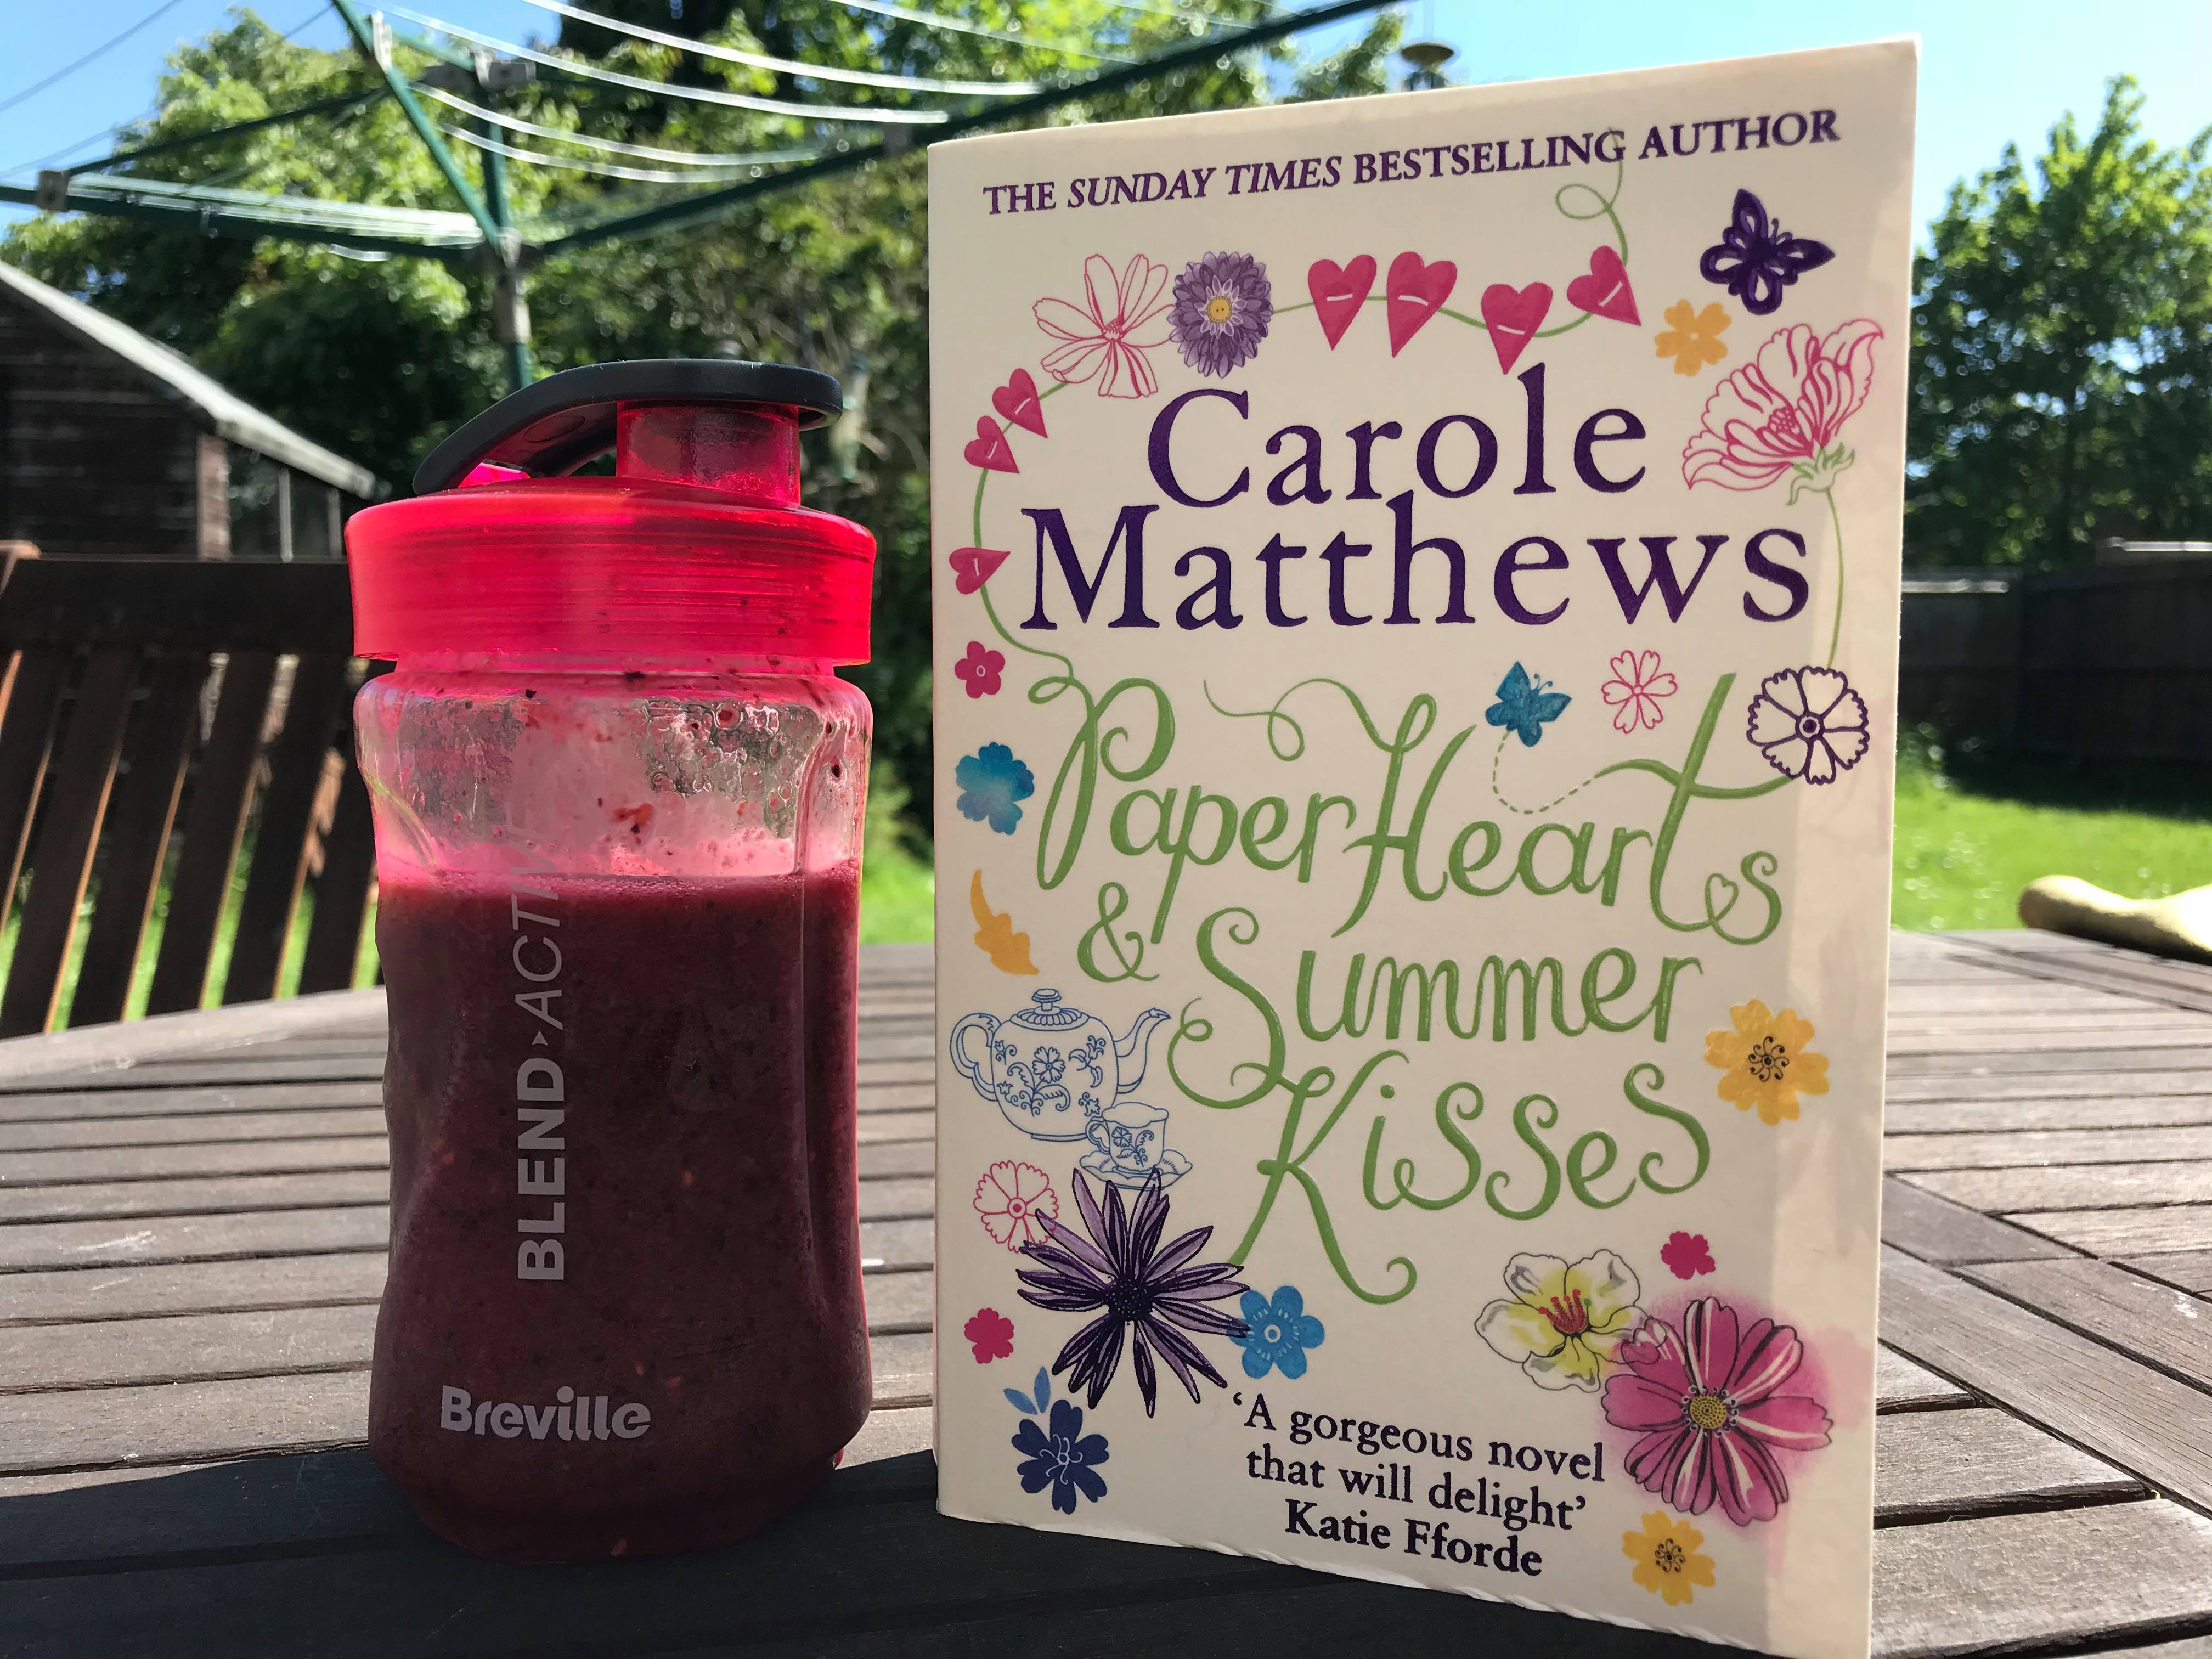 Carole Matthews' Paper Hearts and Summer Kisses with smoothie